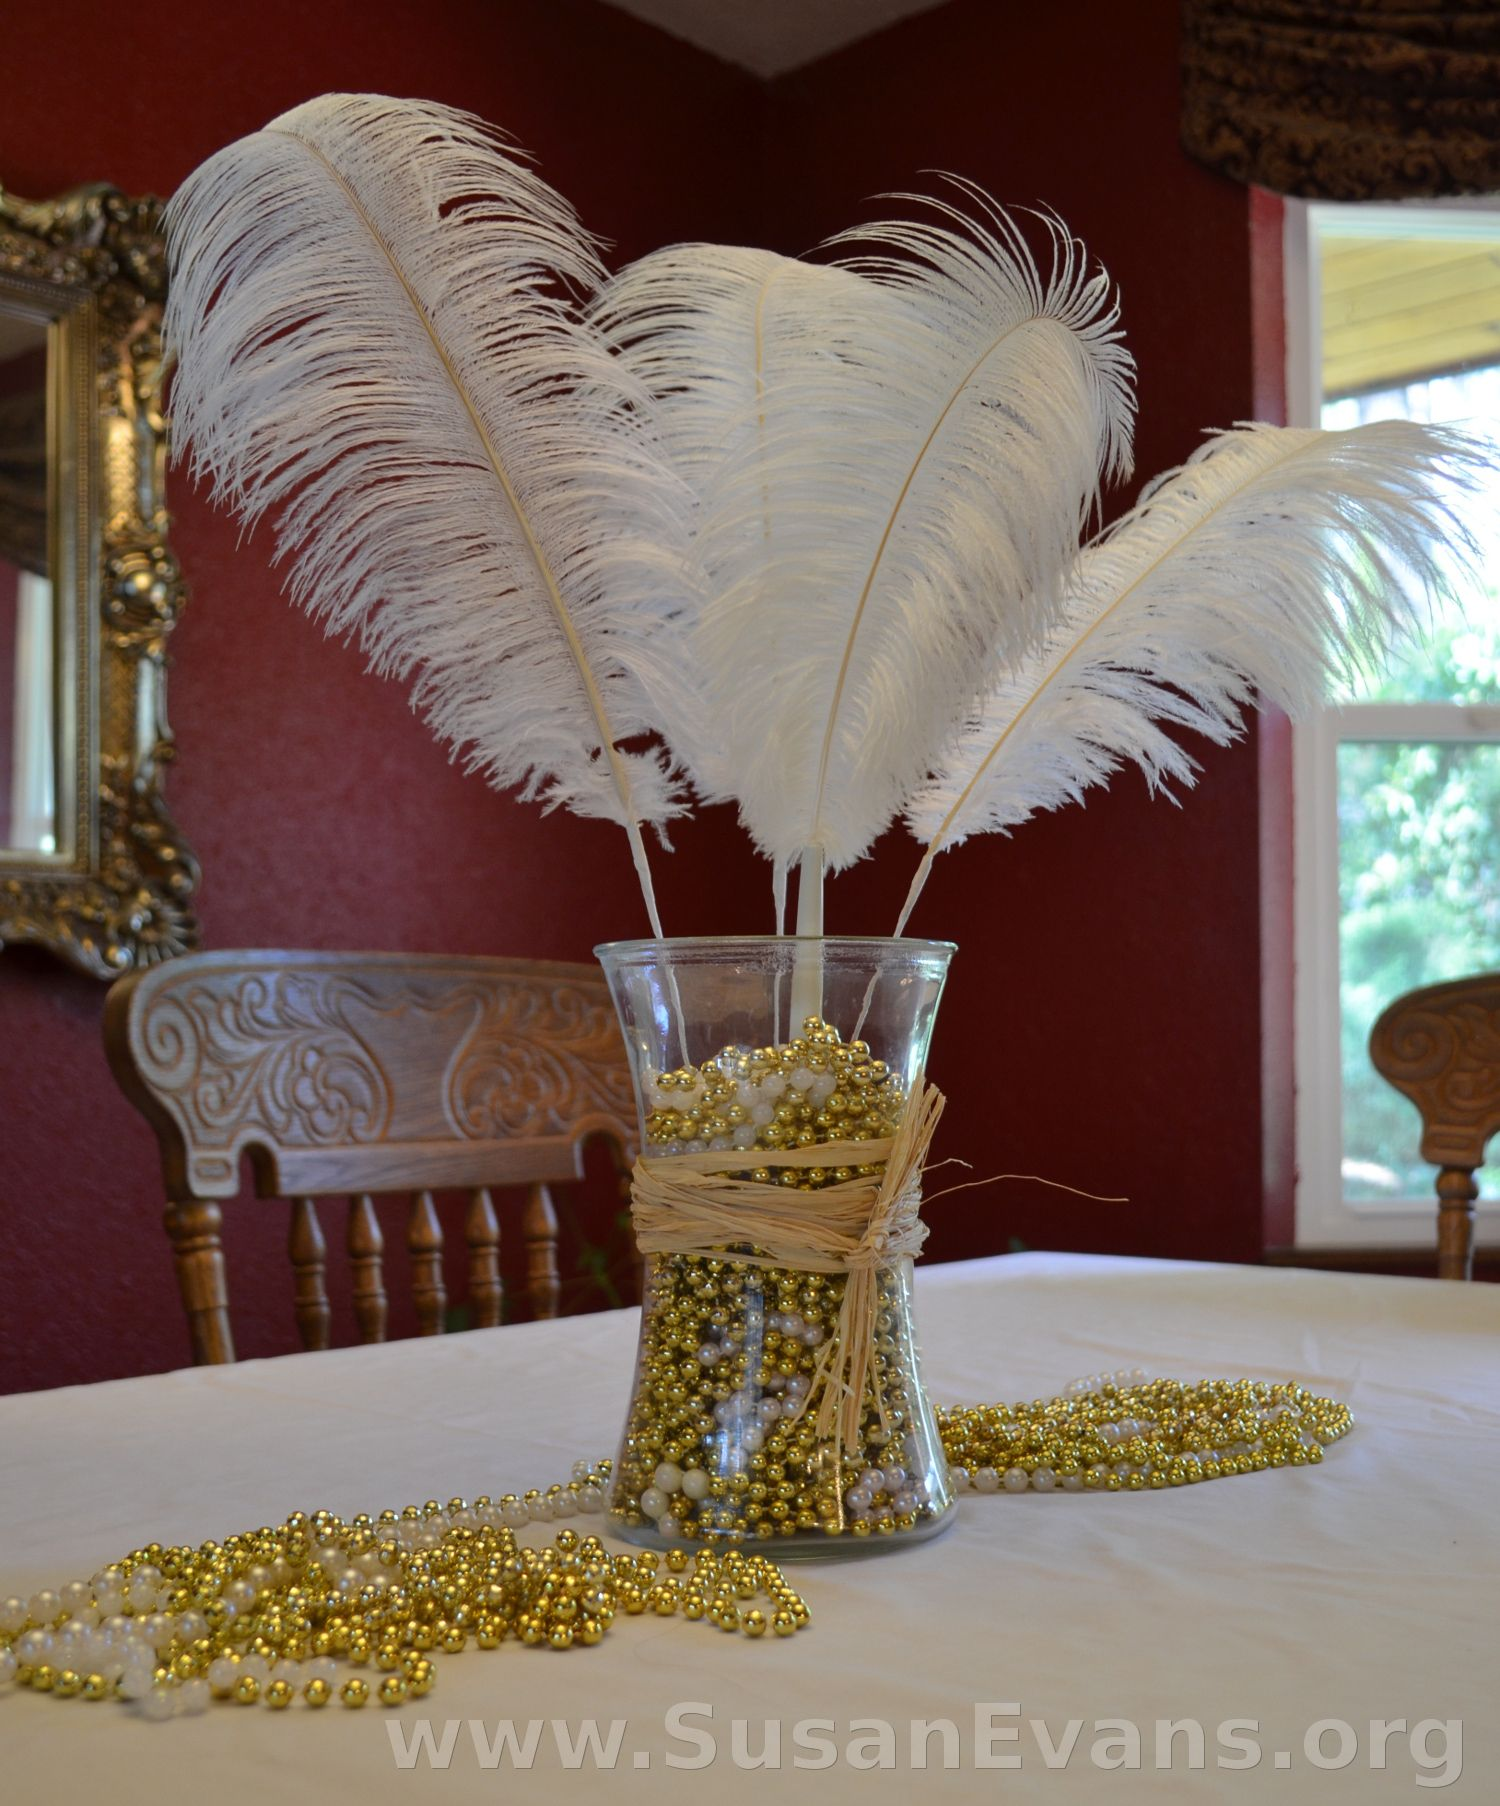 1920 S Party 1920s Party Decorations Mascarade Party 1920s Party